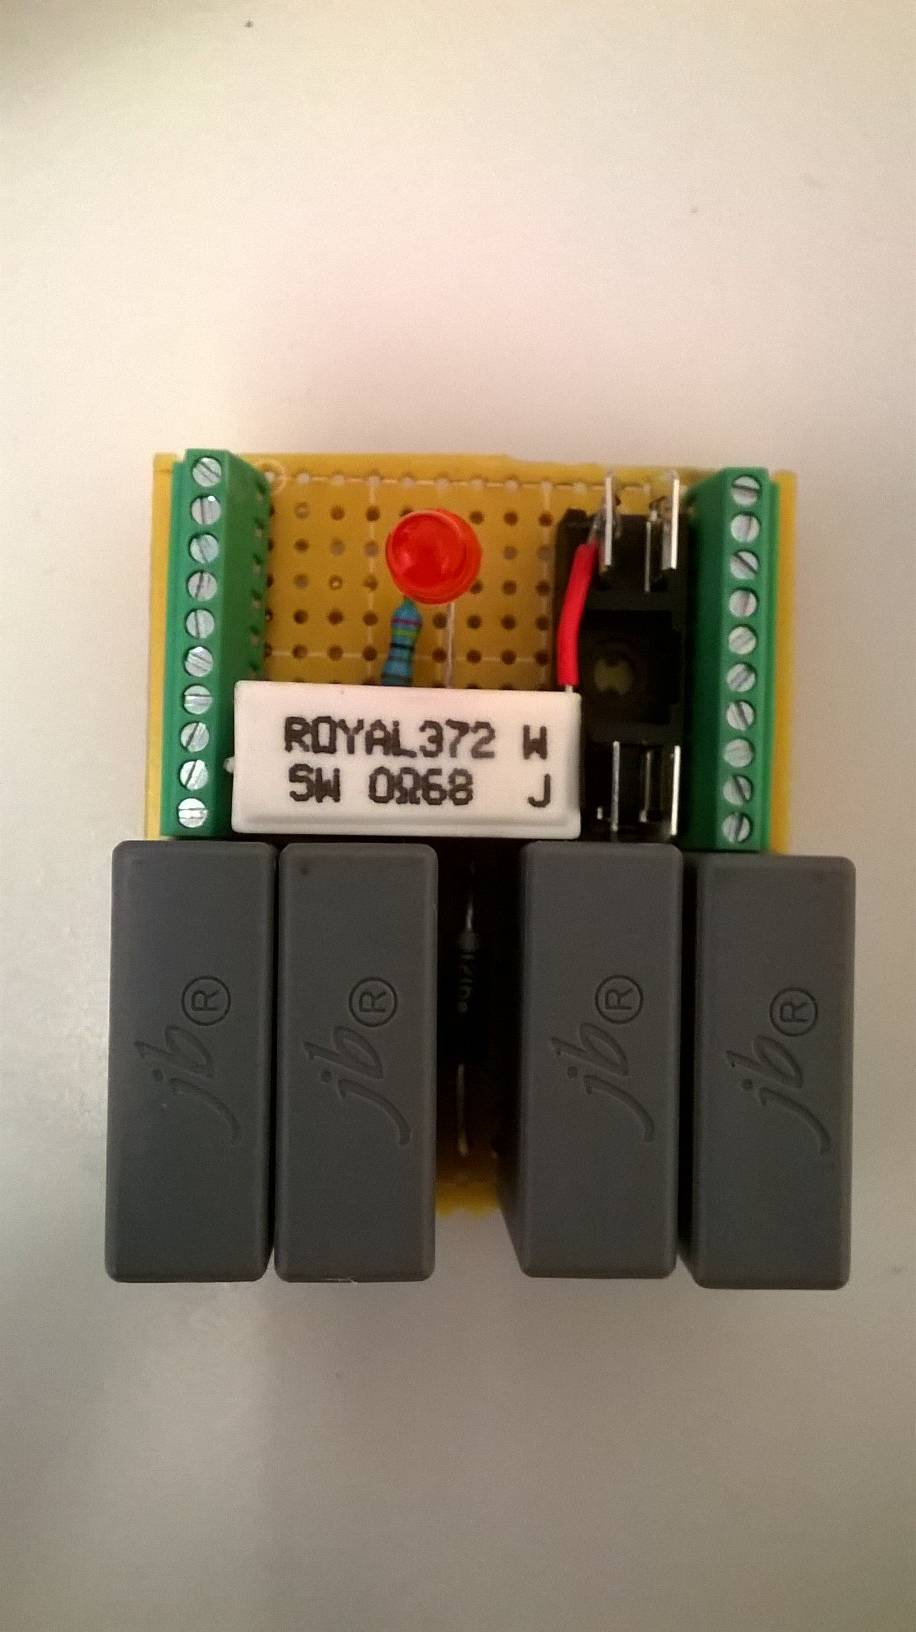 Gandalf 12 You Shall Not Pass Transient Voltage Suppression Rc Circuit 1 2 Above View